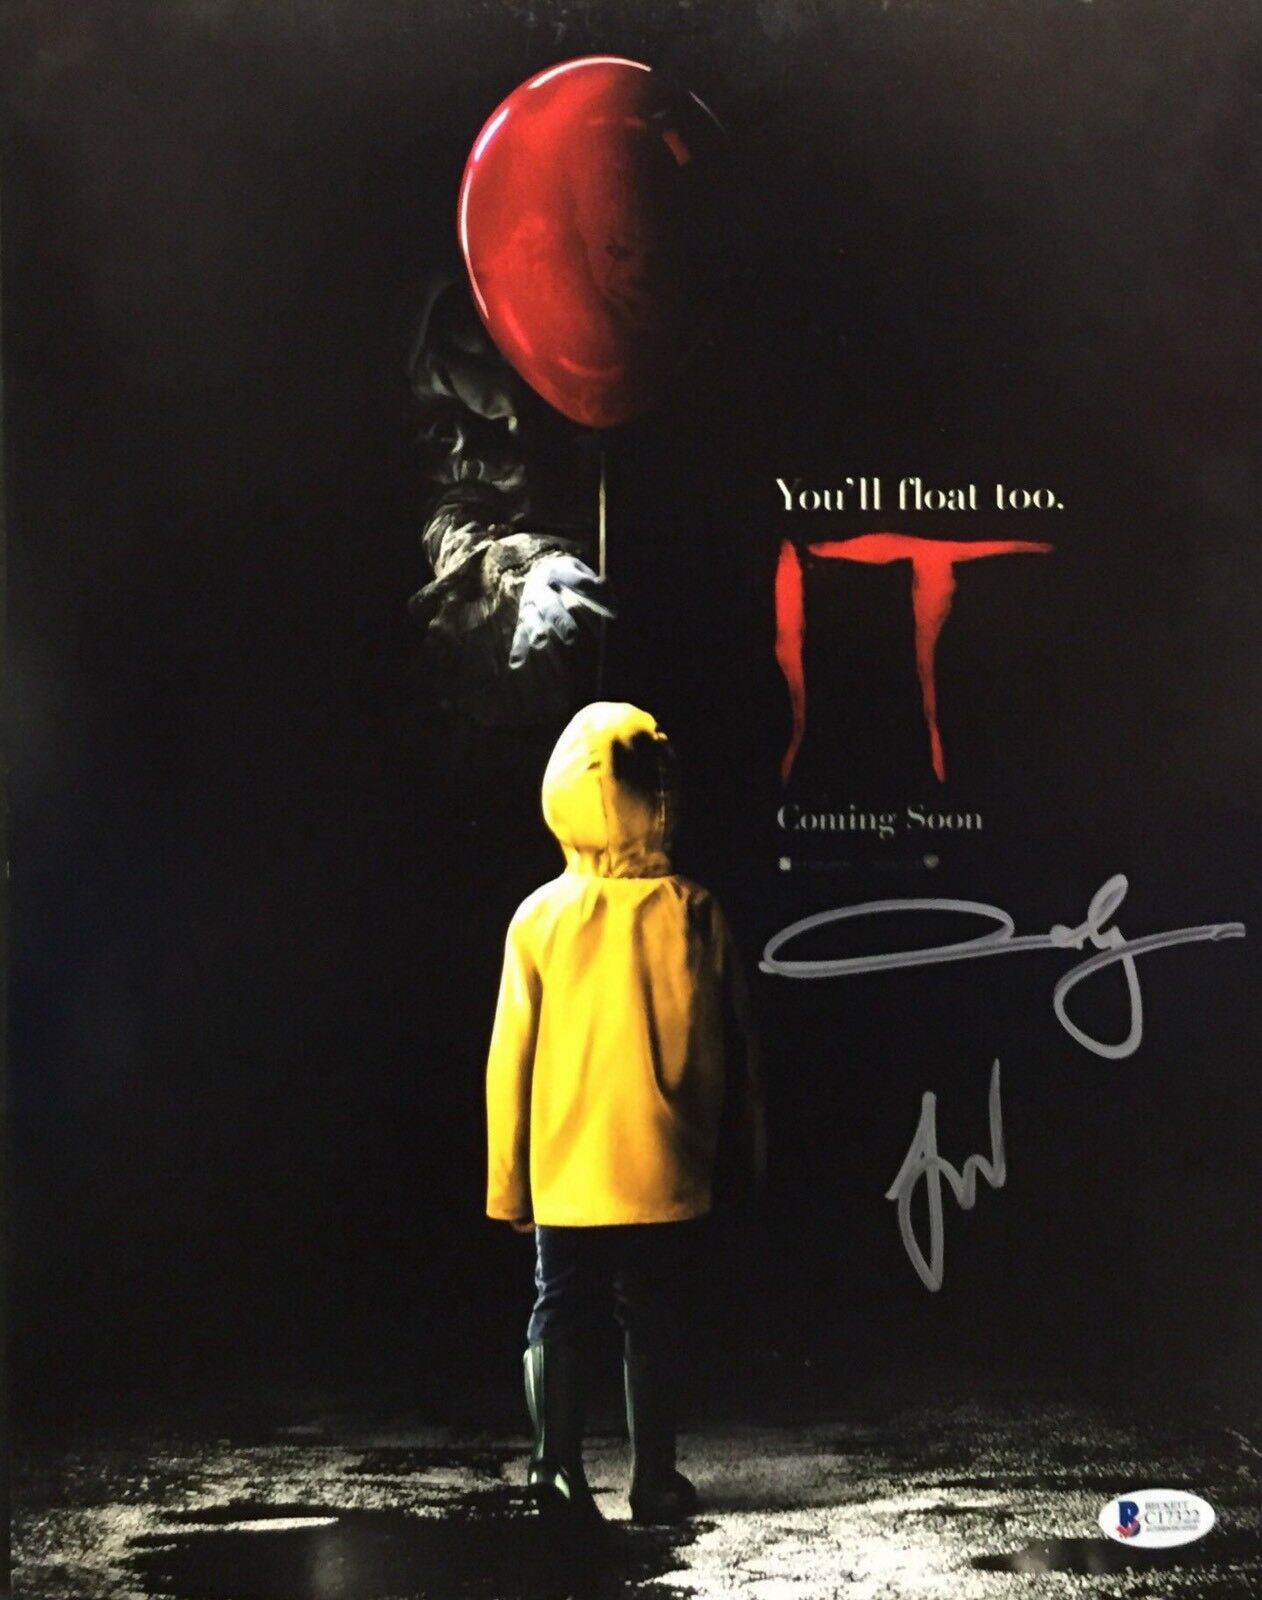 Jaeden Lieberher And Andy Muschietti Signed 'It' 11x14 Photo Beckett C17322